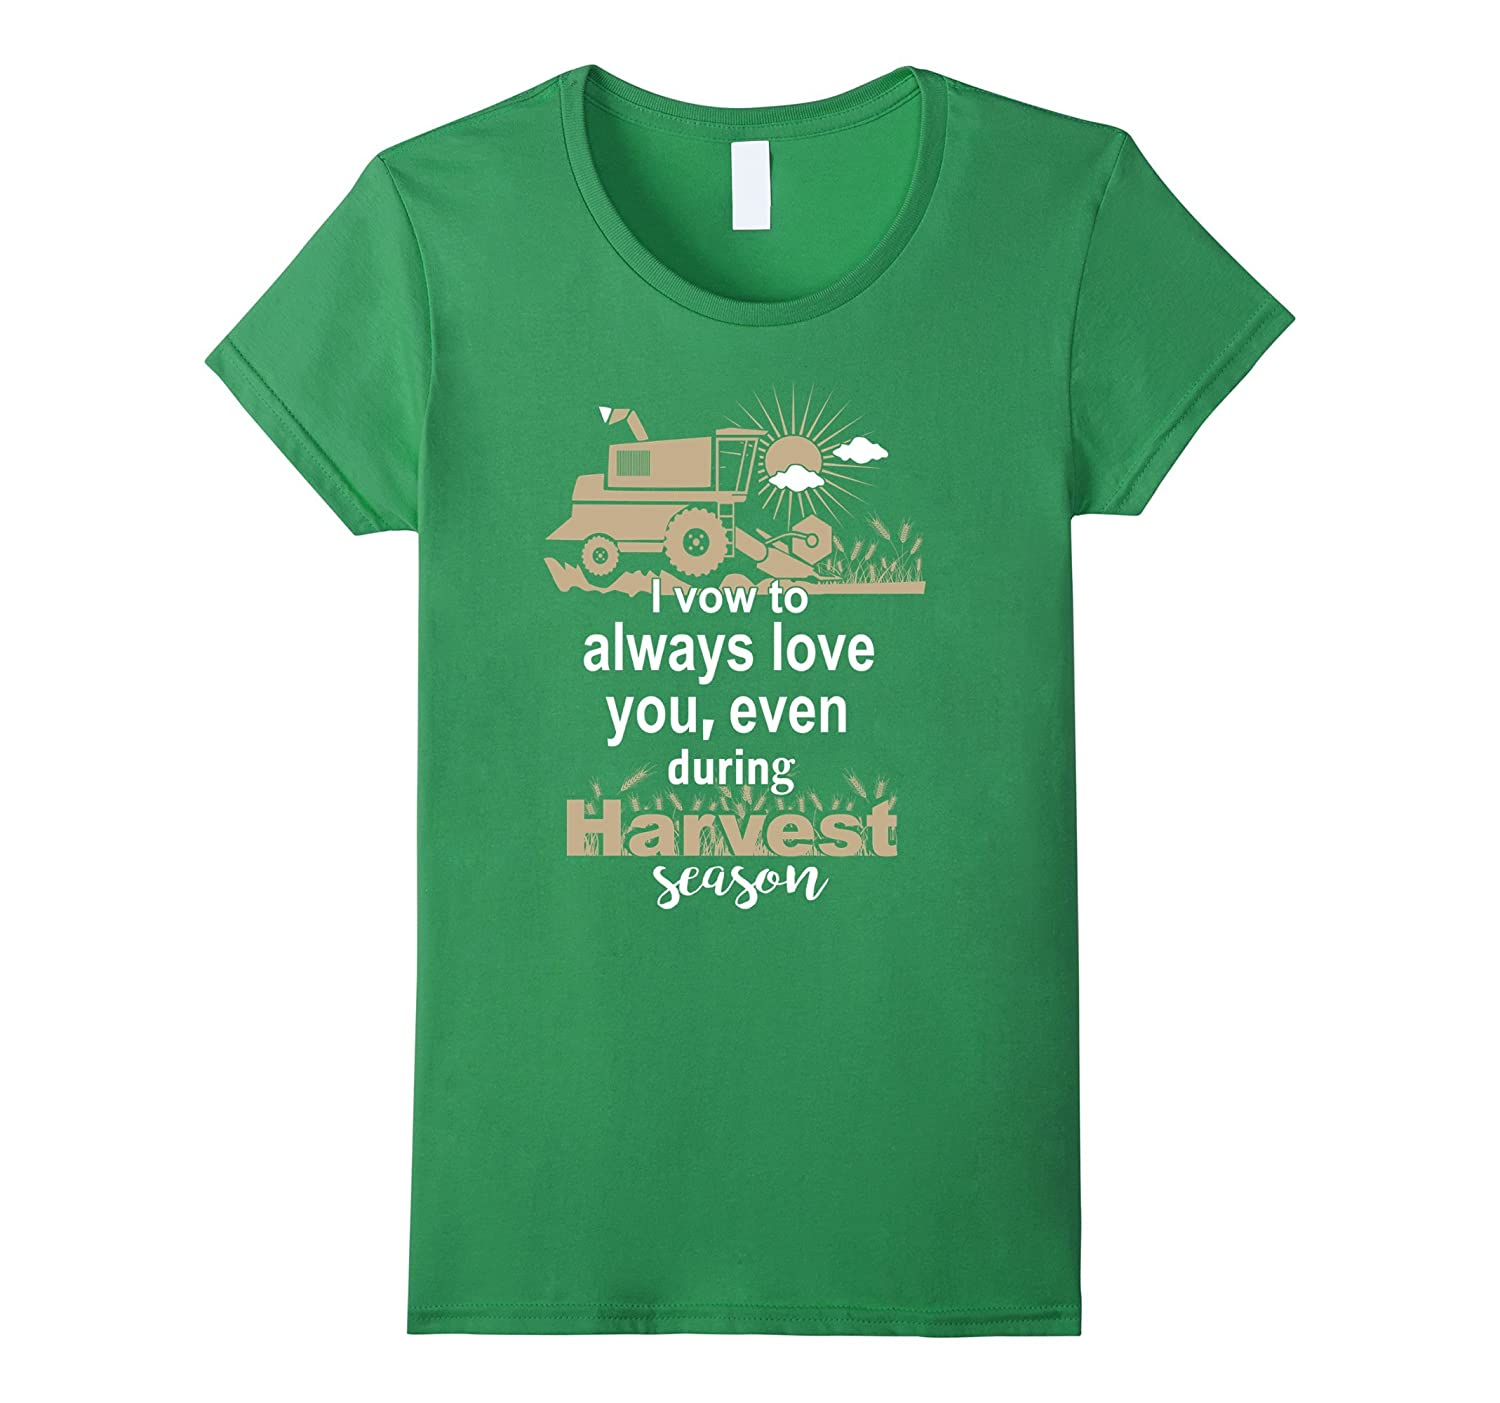 Farmer tshirt I vow to always love you even during harvest s